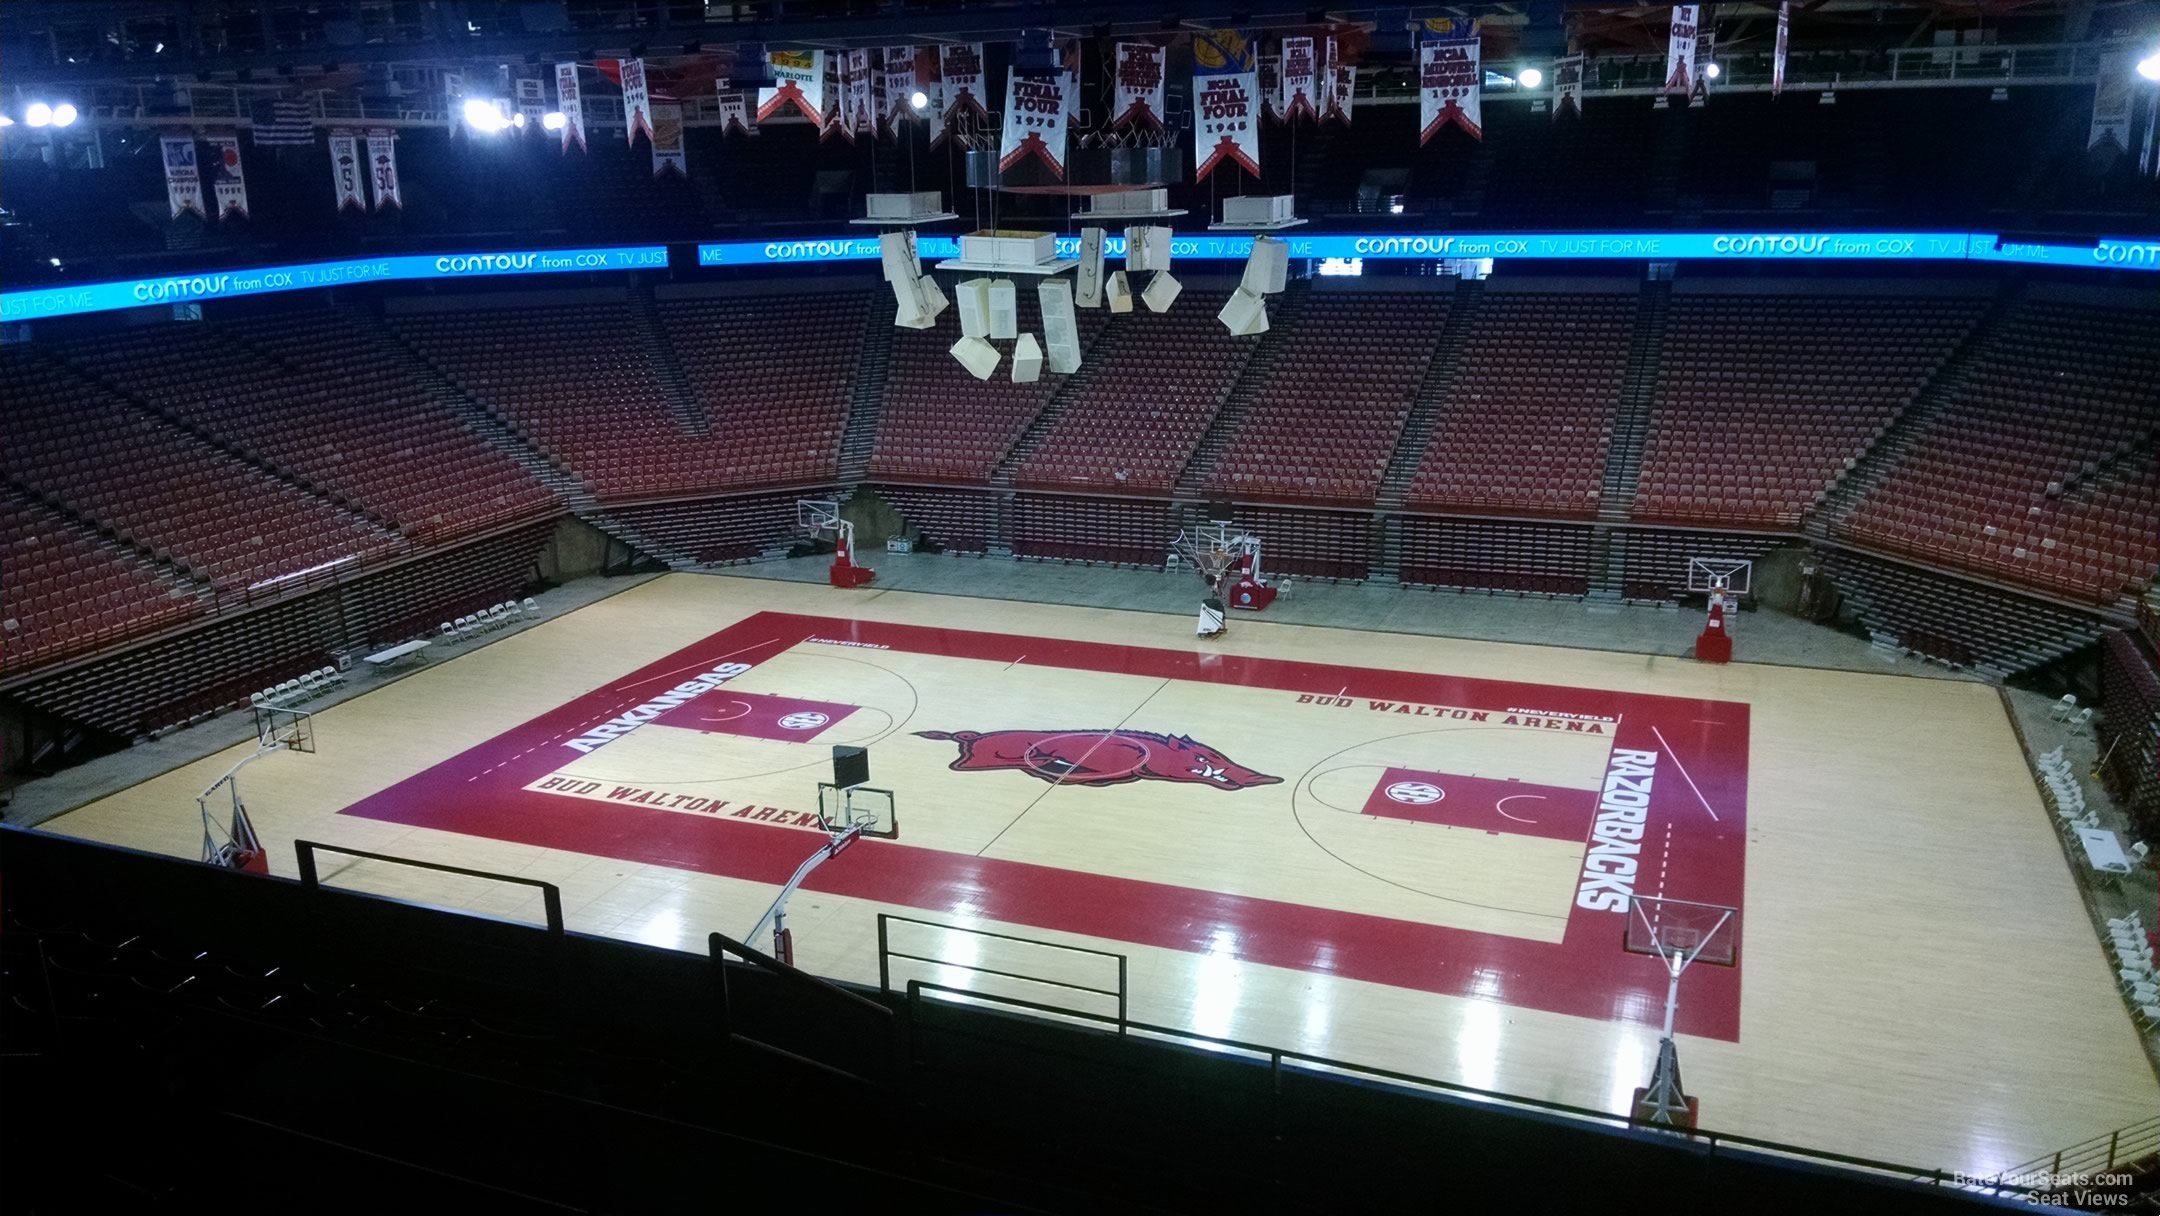 Section 234 seat view